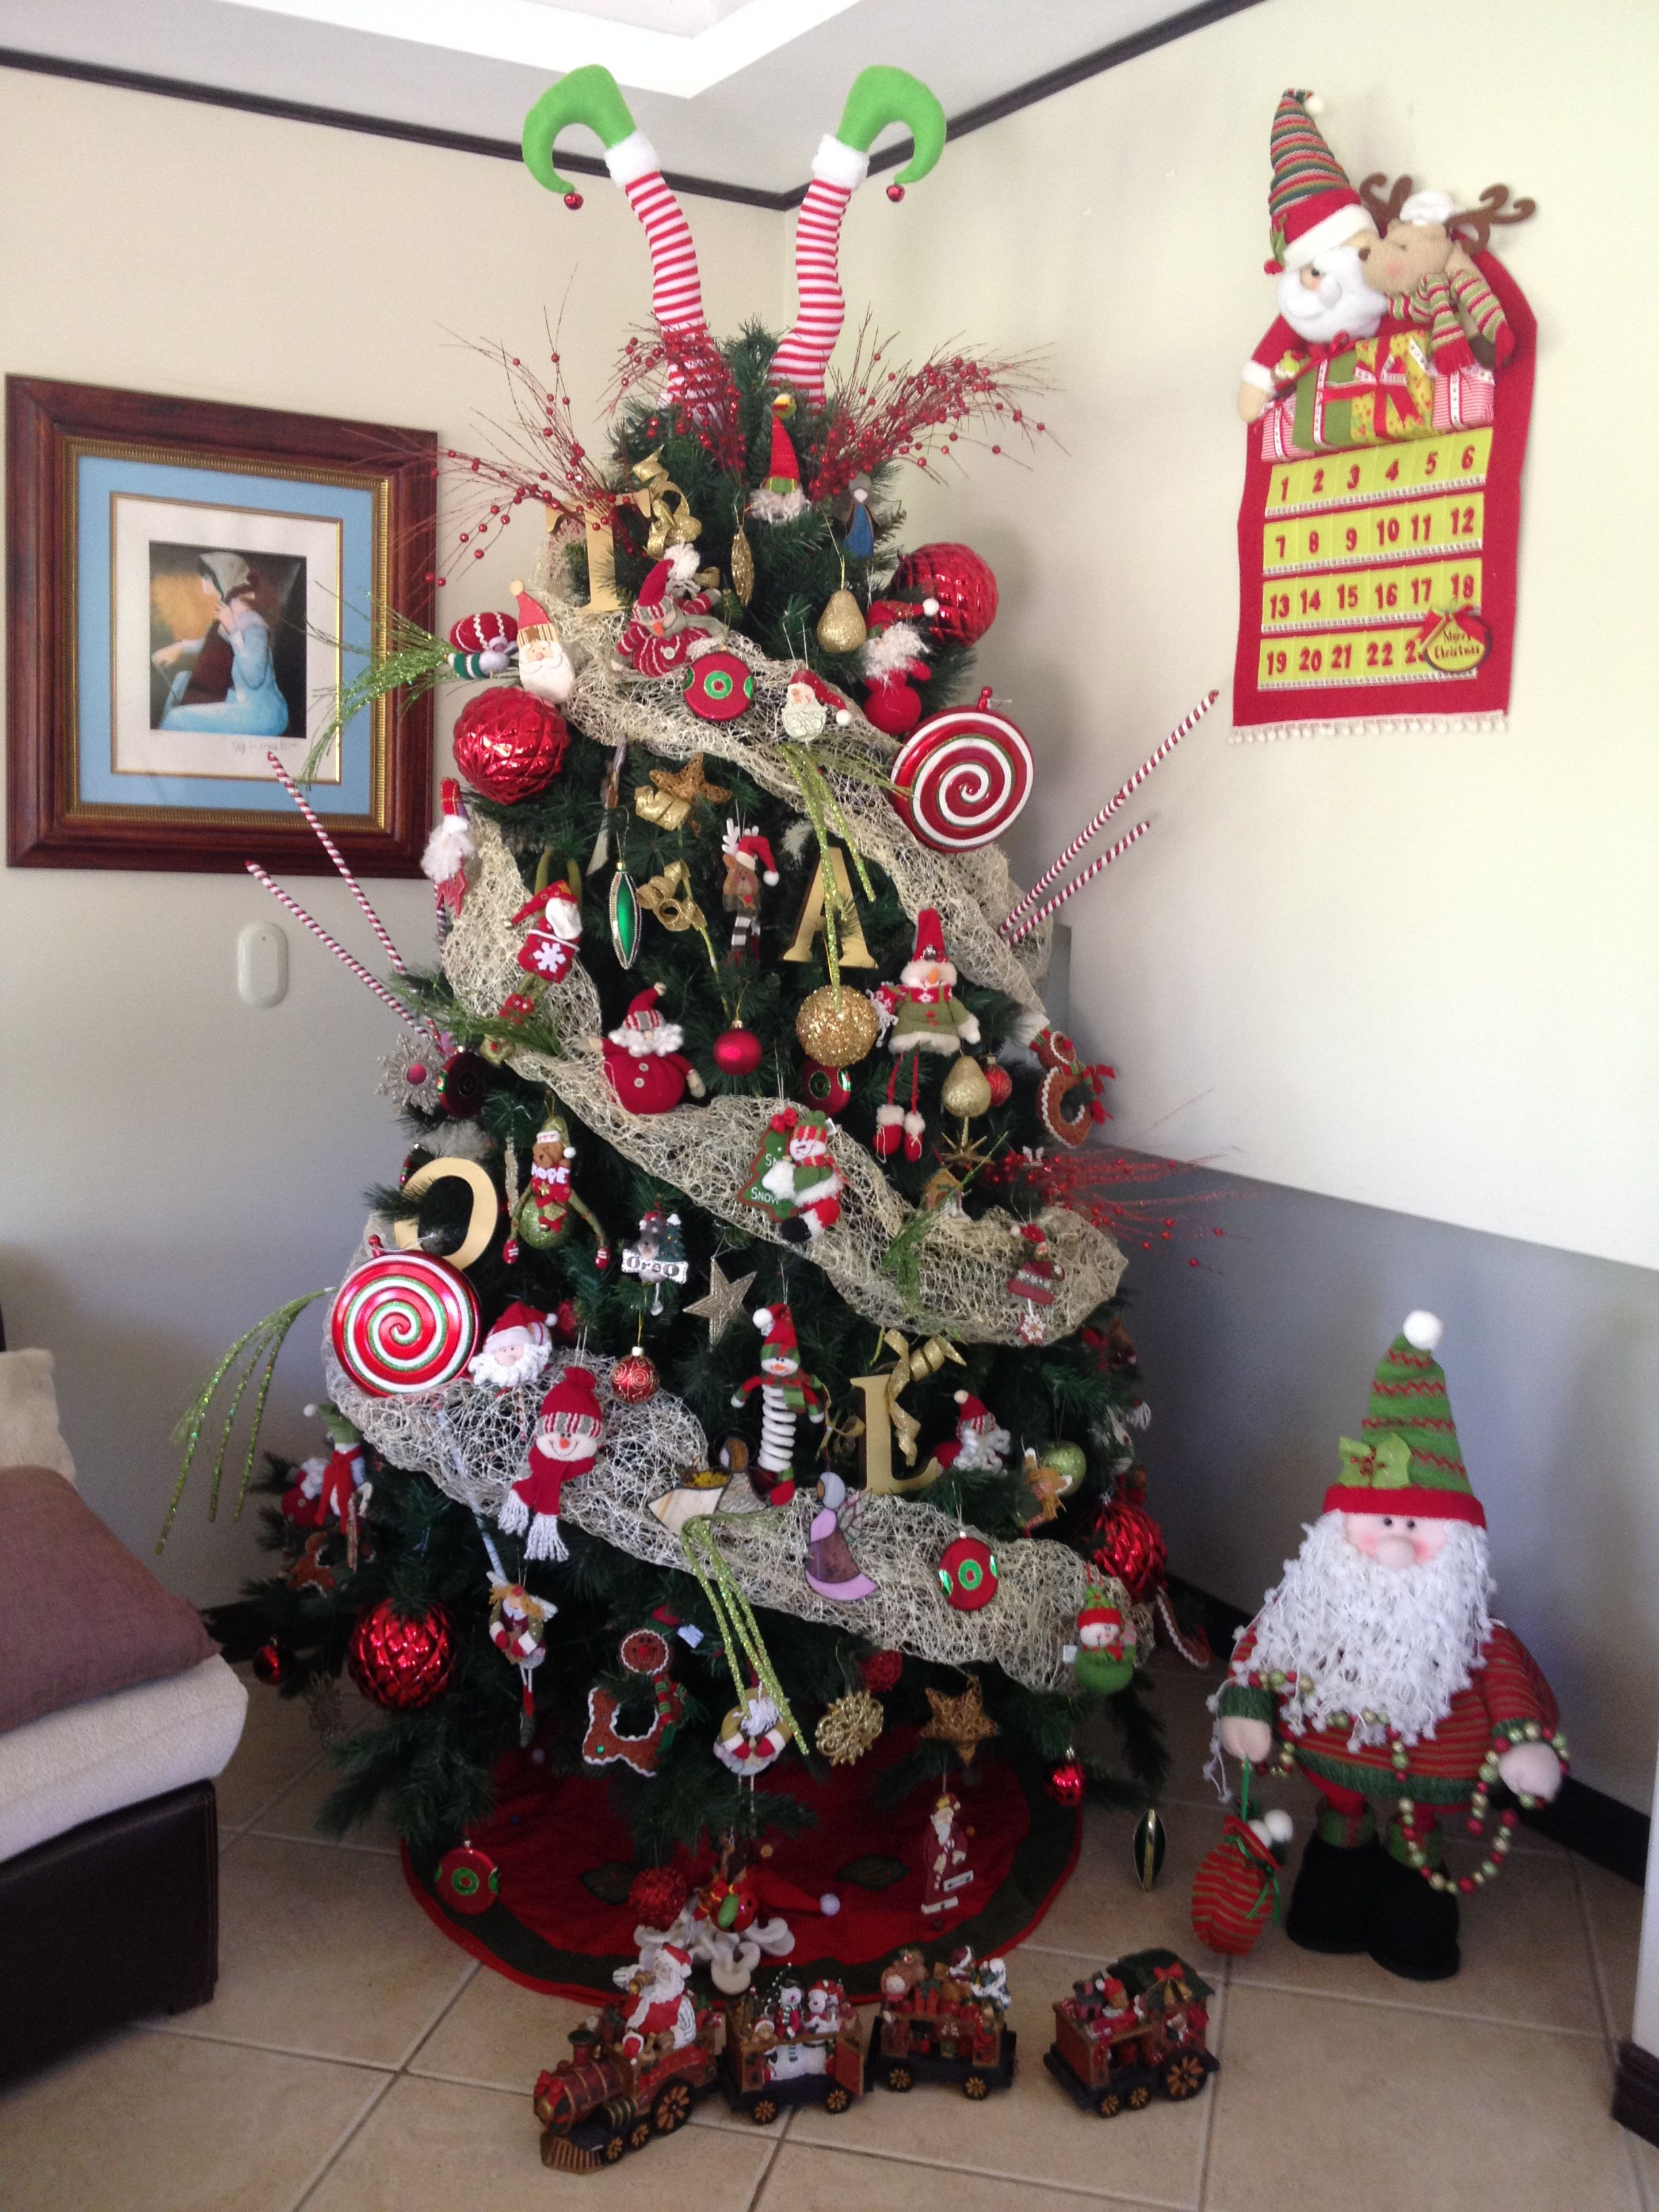 Arbol de navidad 2013 family christmas decoration - Decoracion arbol ...